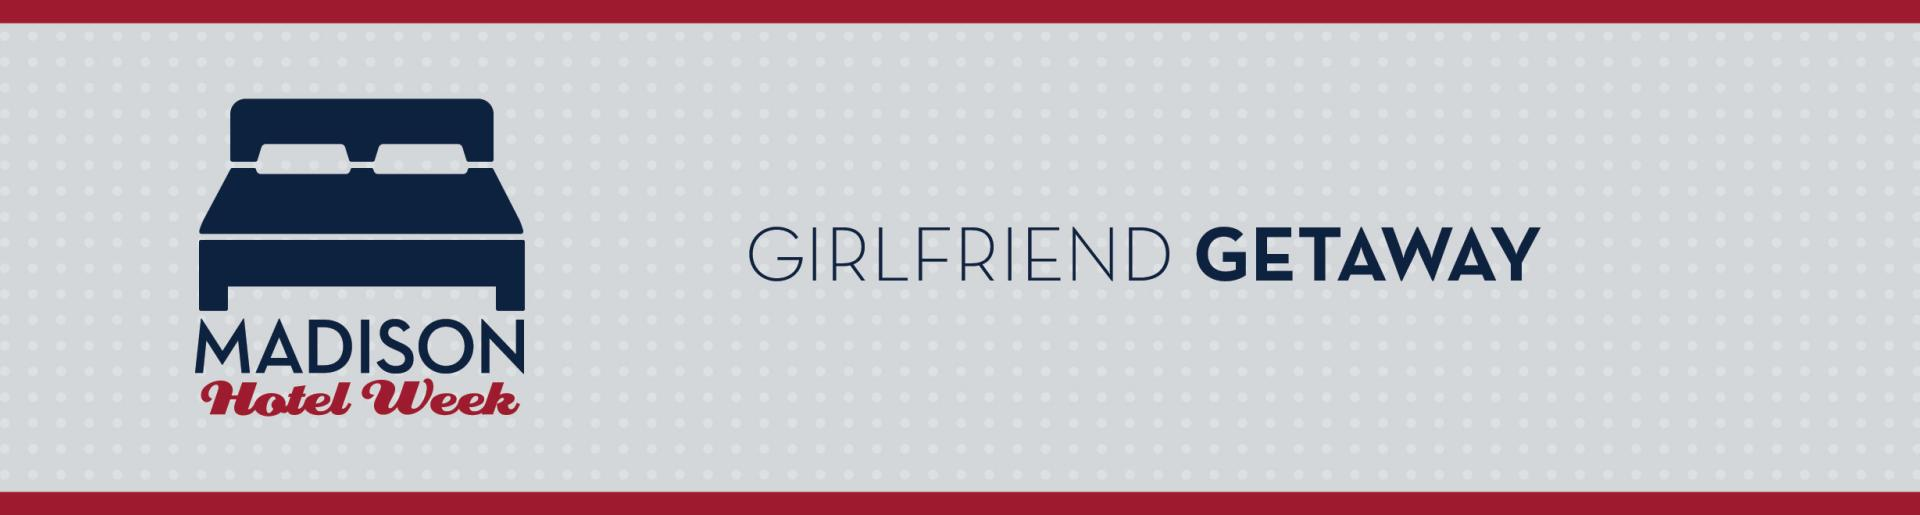 Madison Hotel Week: Girlfriend